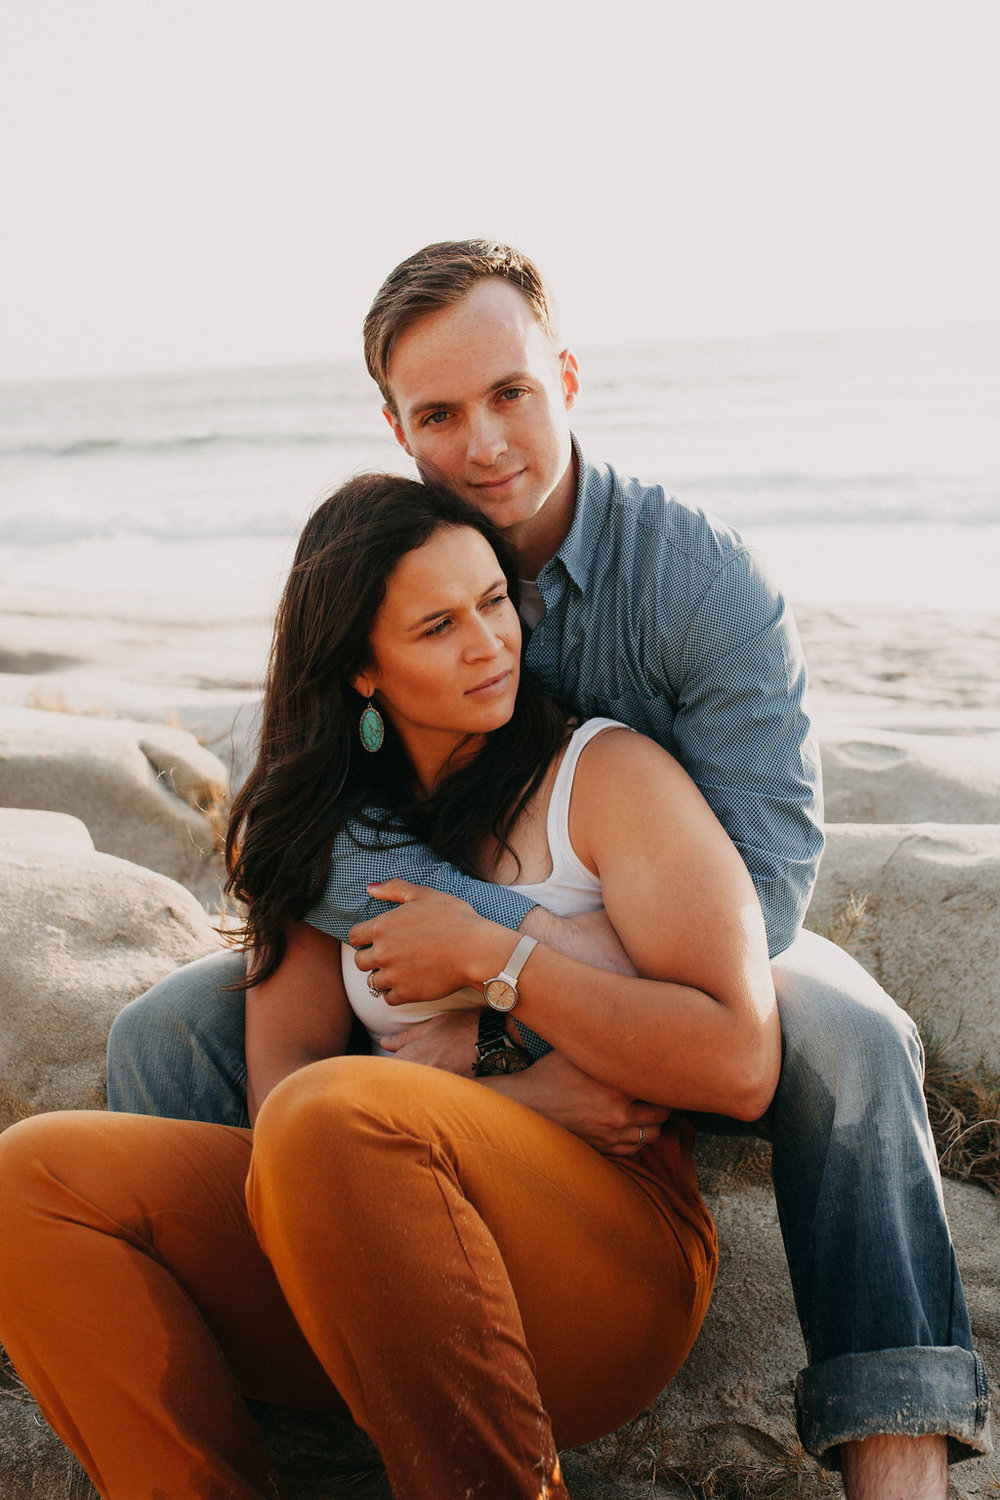 pinkfeatherphotography-WindandSeabeachengagementshoot(98of152).jpg